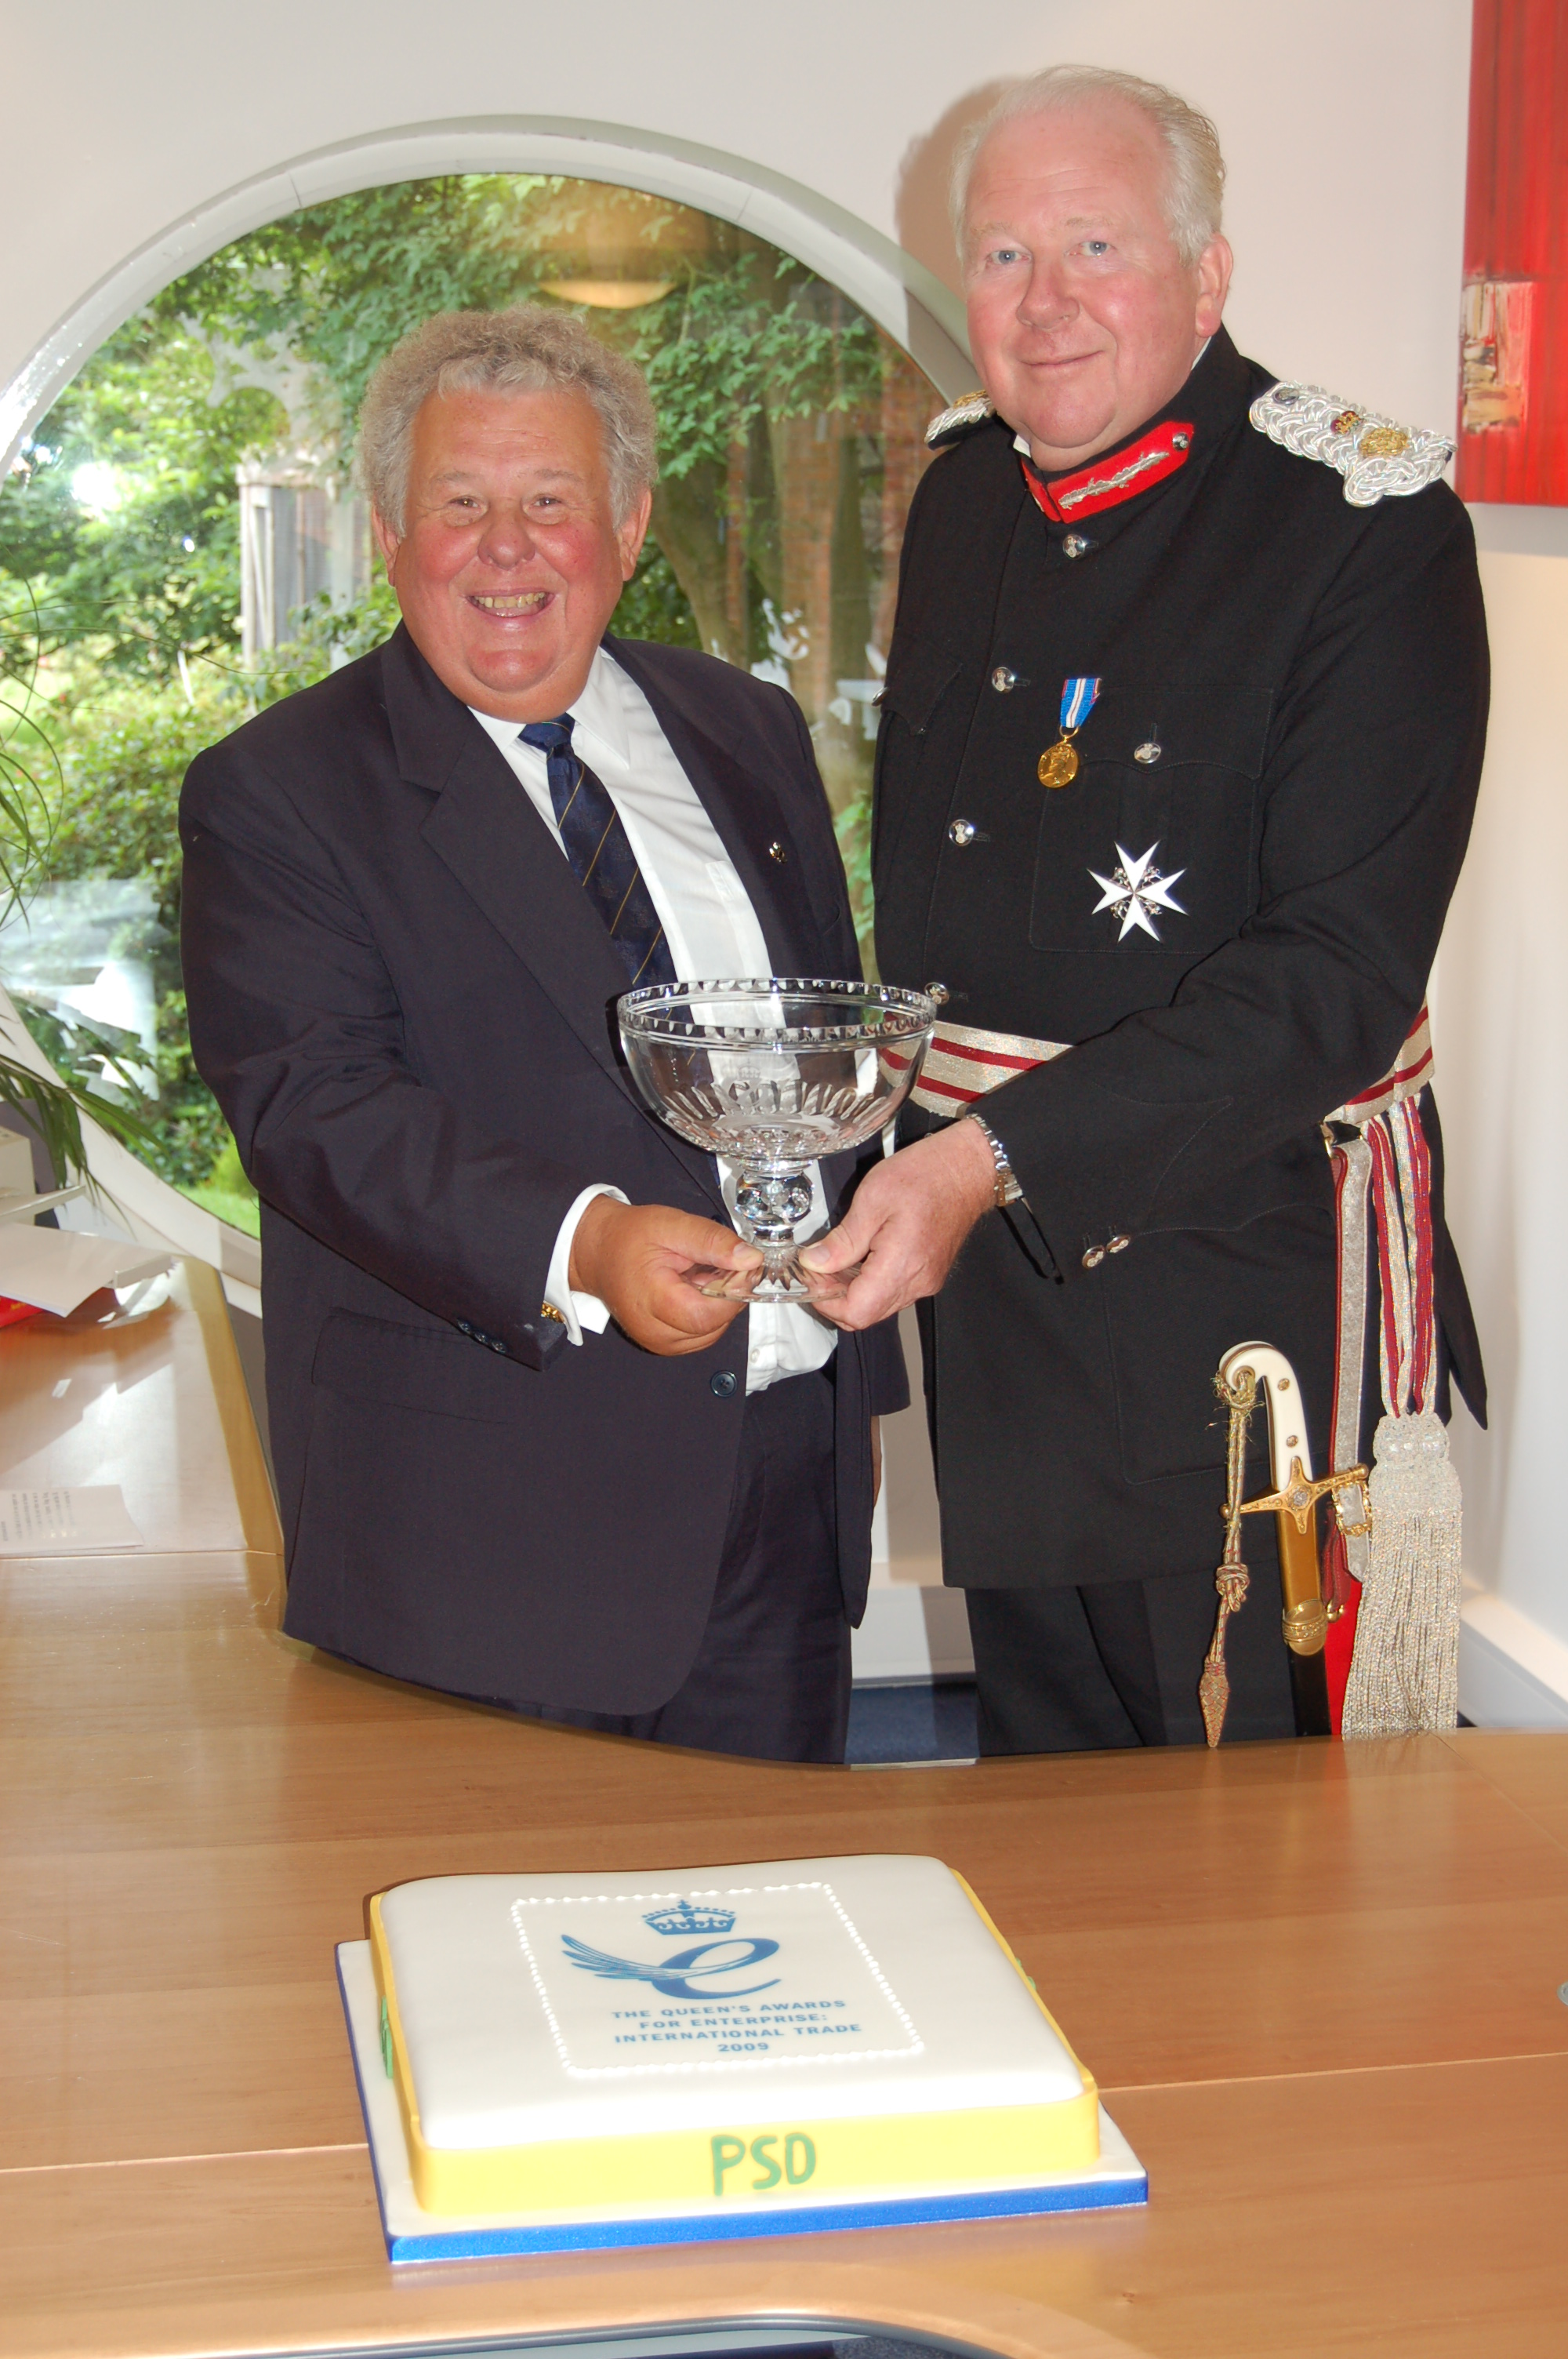 Lord Shuttleworth presents The Award to Colin Pigott